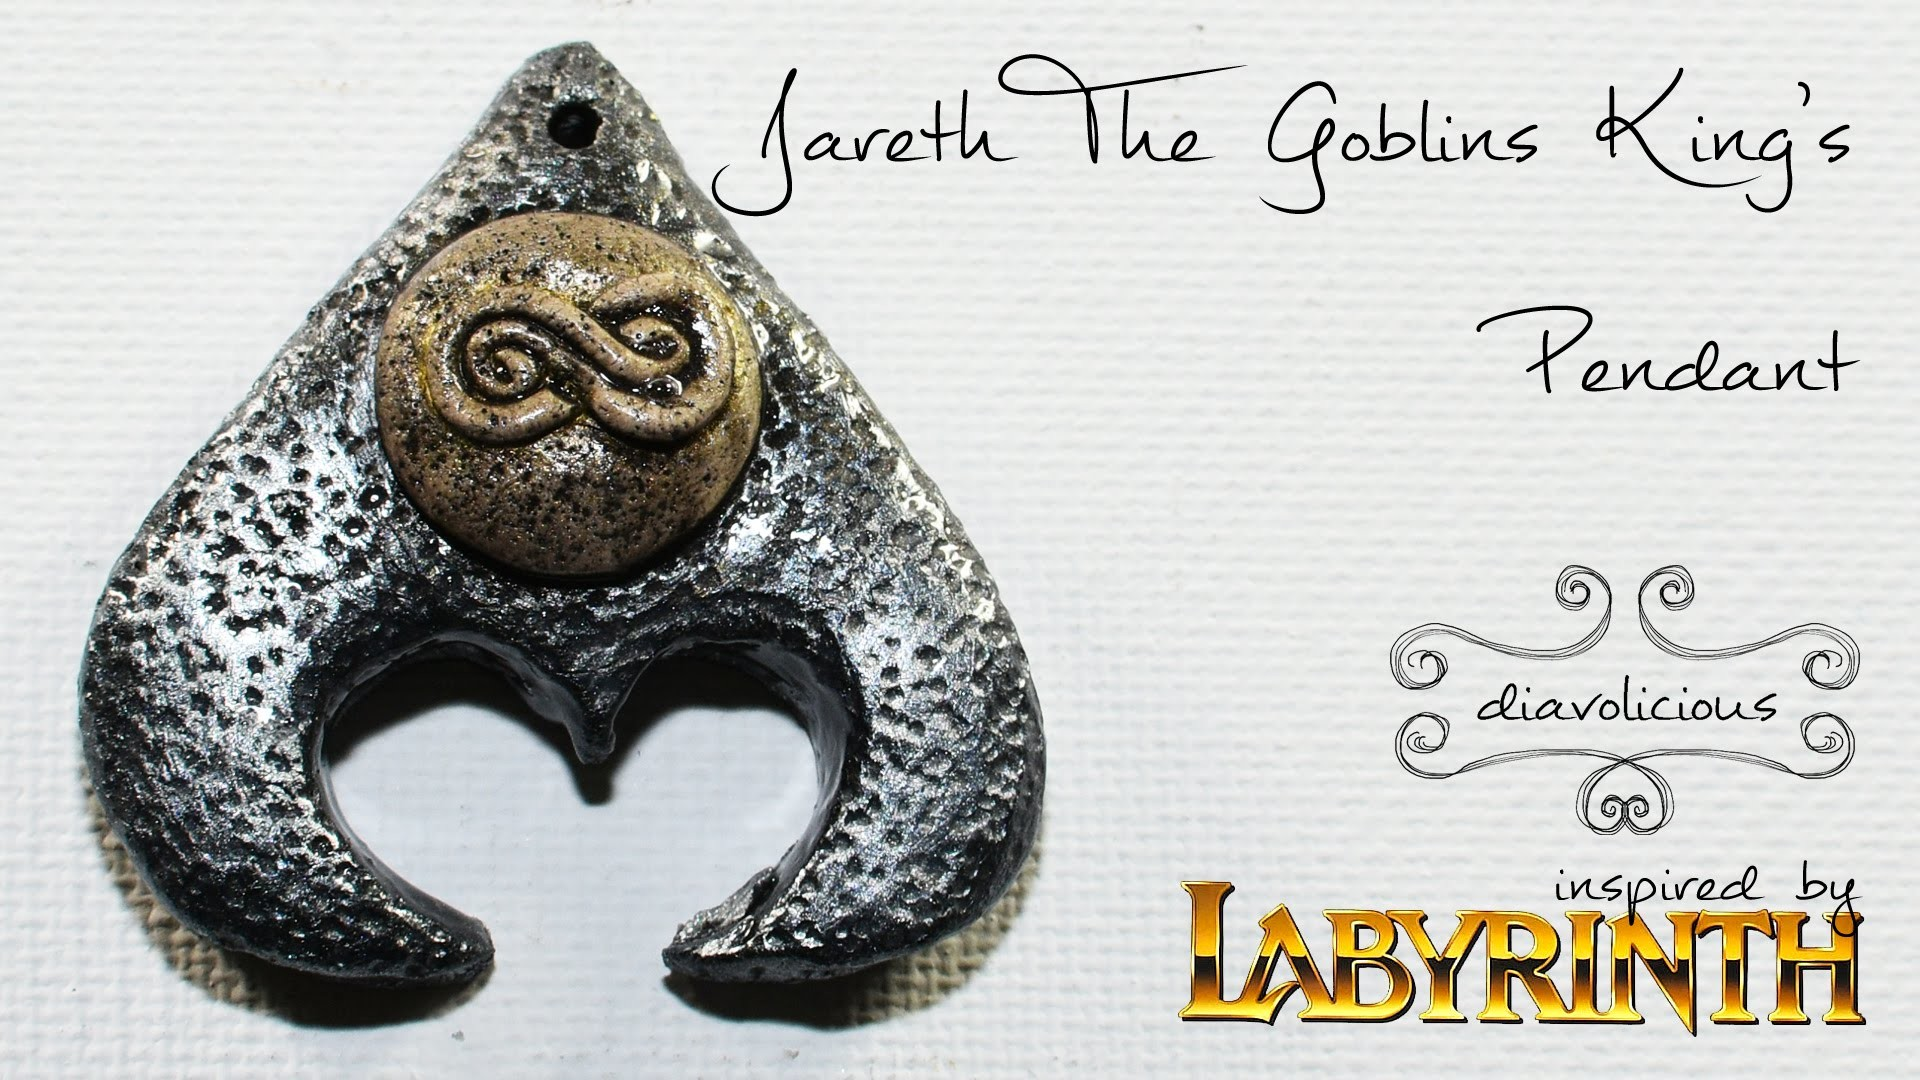 Jareth The Goblin King necklace - Labyrinth inspired polymer clay TUTORIAL